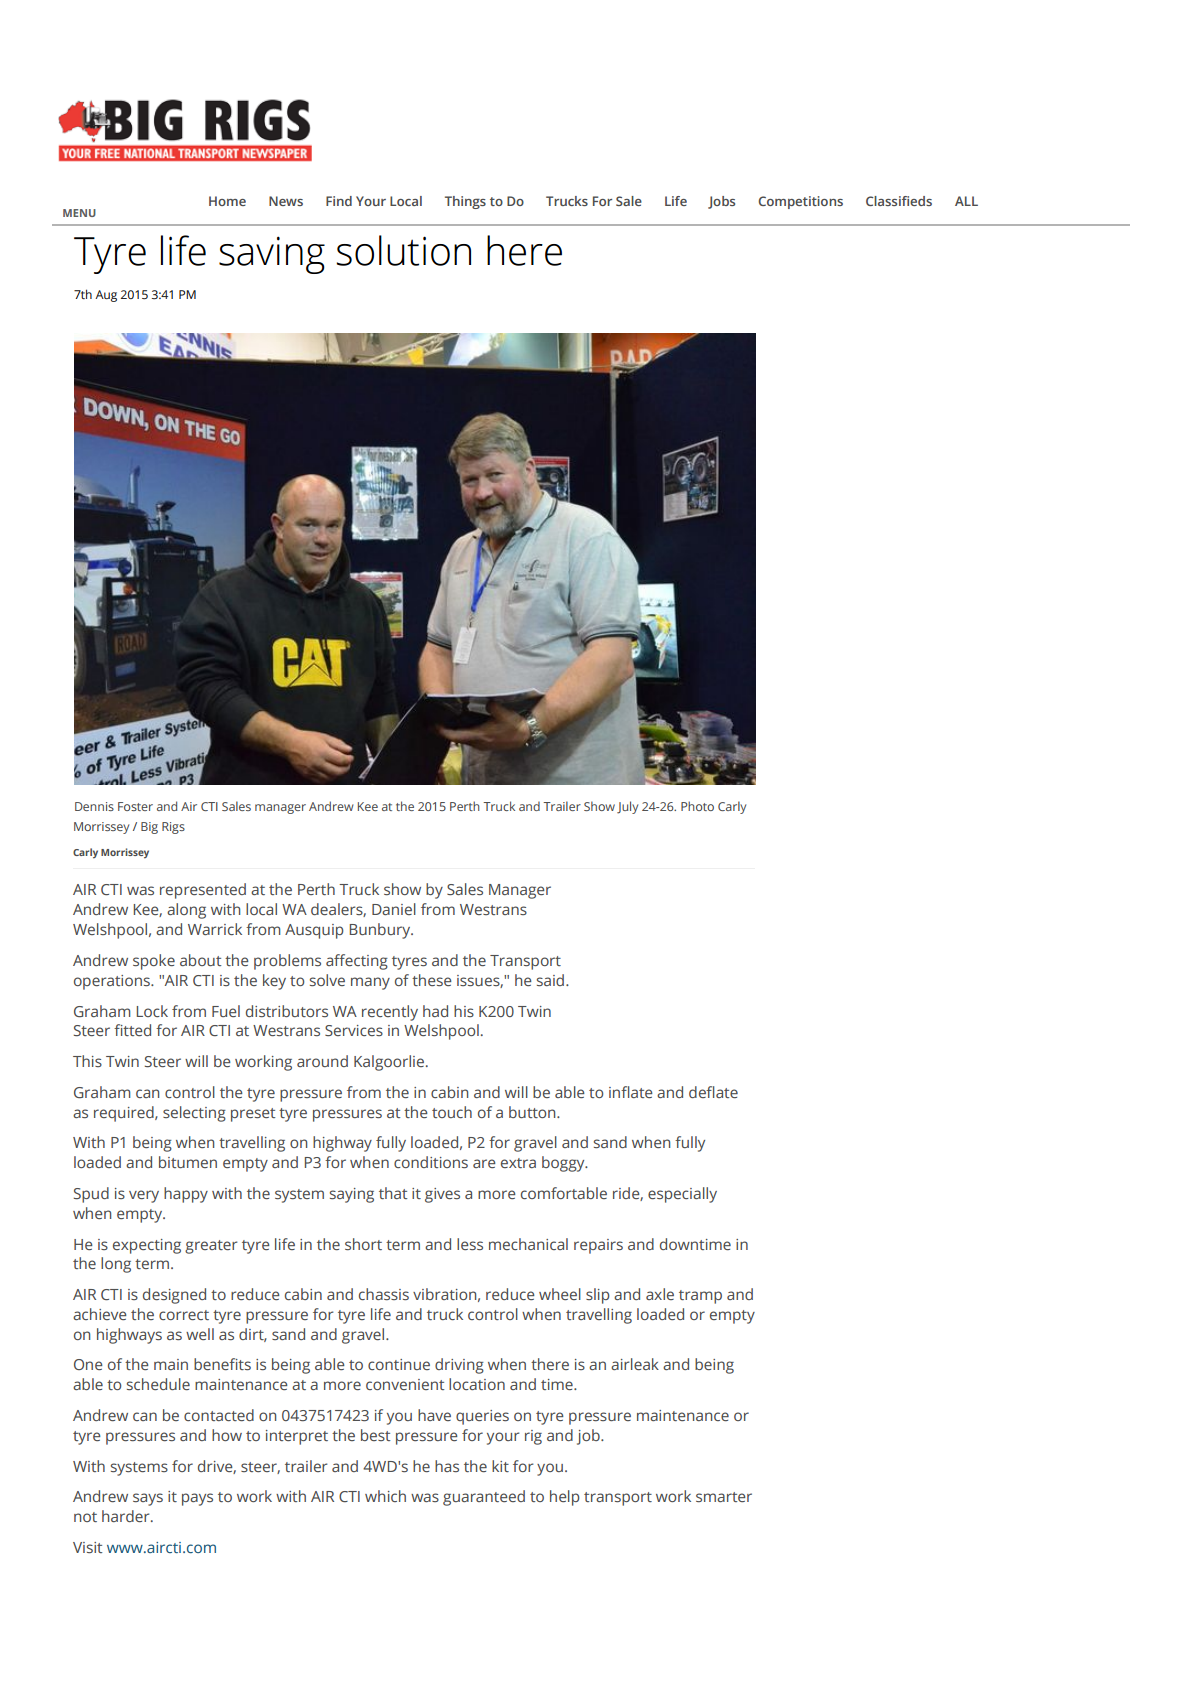 Air CTI Article in Big Rigs 2015